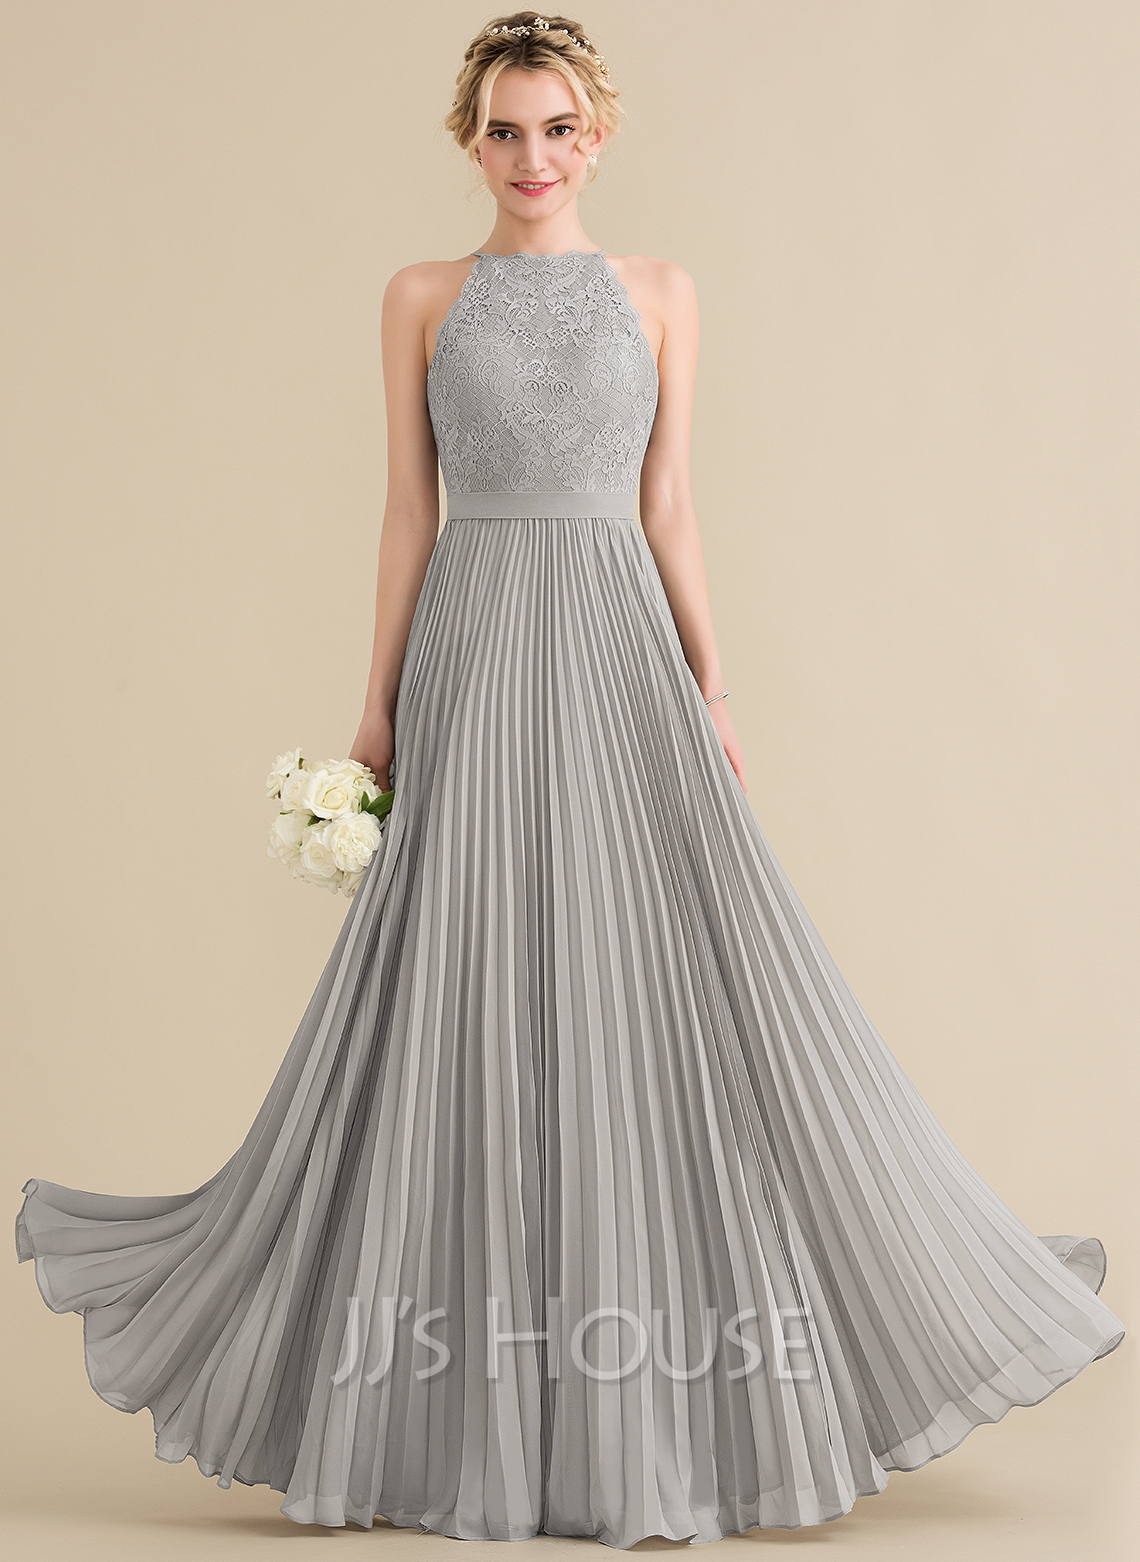 f7215977e28e A-Line/Princess Scoop Neck Floor-Length Chiffon Lace Bridesmaid Dress With  Pleated. Loading zoom